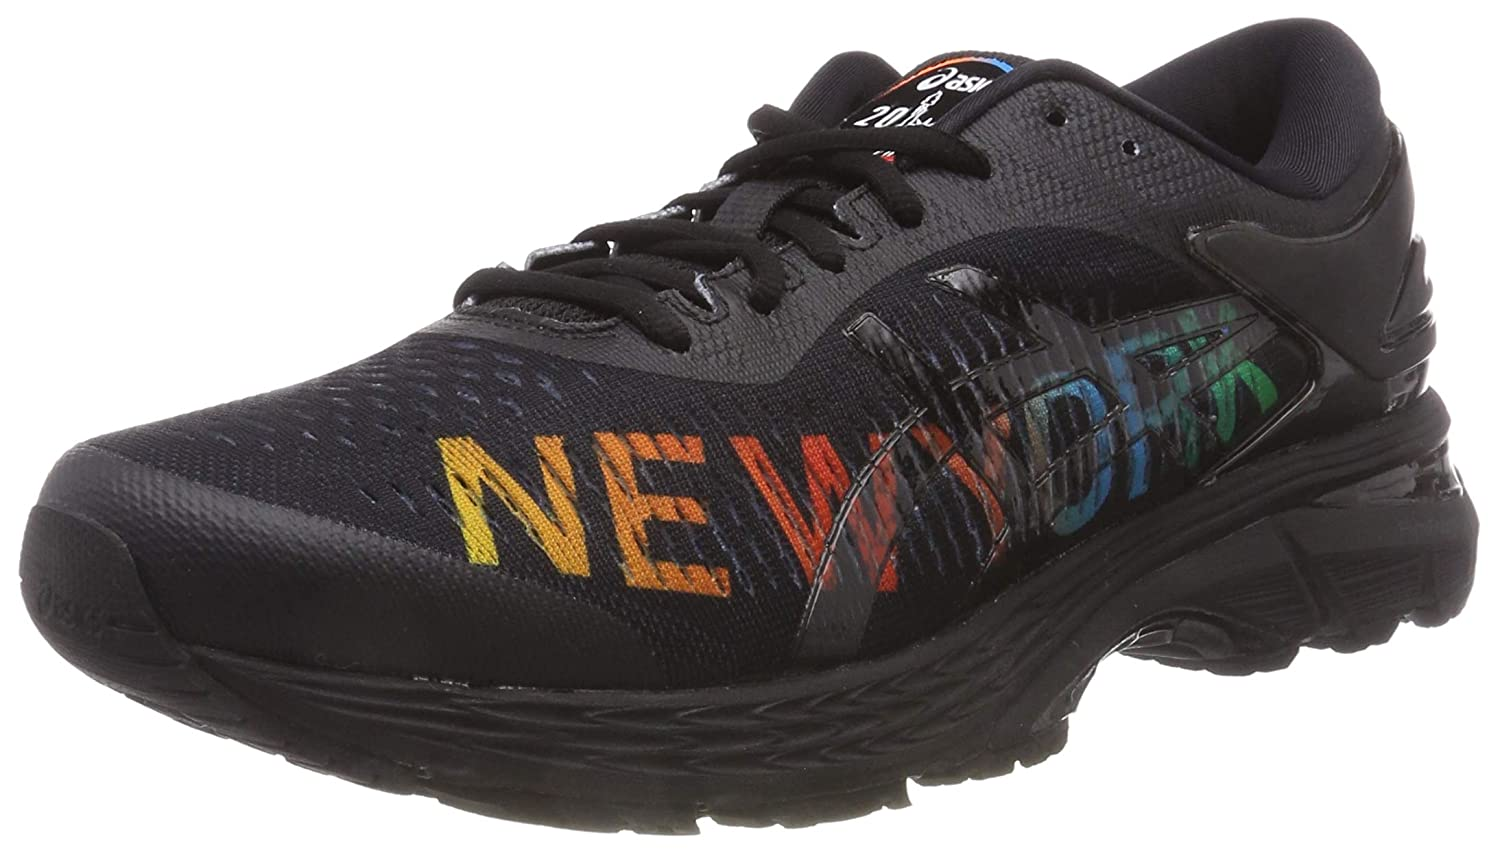 brand new 52767 036ed Amazon.com | ASICS Luxurious Running Shoes Men Gel Kayano 25 ...